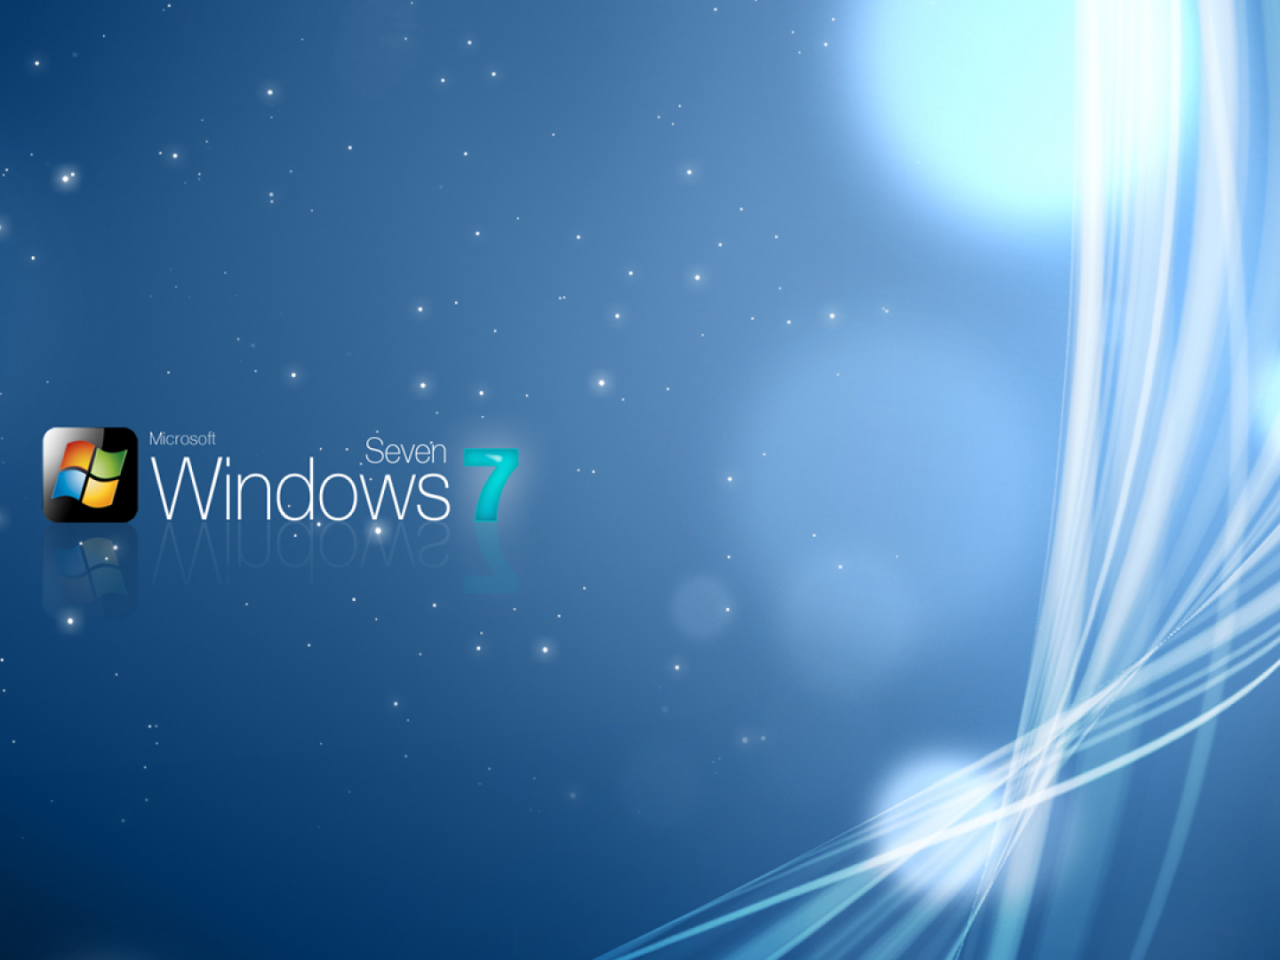 Windows 7 Sparkly Wallpaper Hd Wallpapers